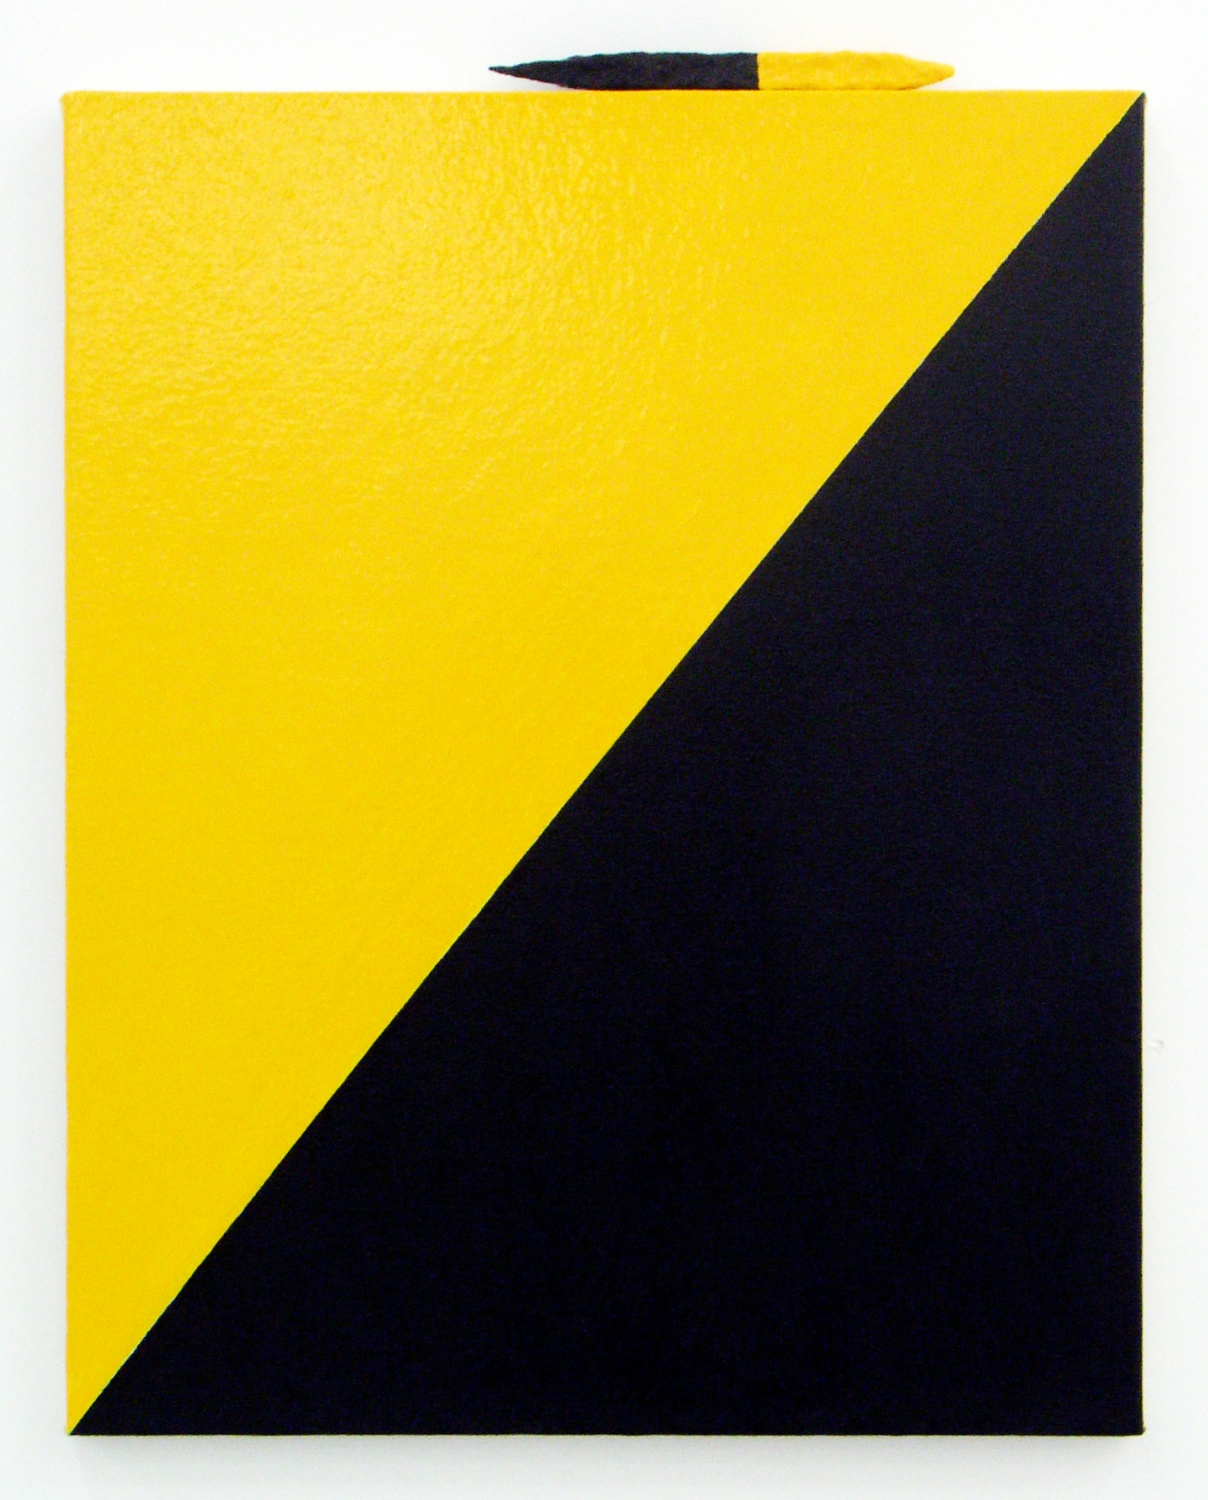 Lisa Williamson  Yellow and Black Metal  2009 Enamel and painted metal on canvas 20h x 16w in LW014